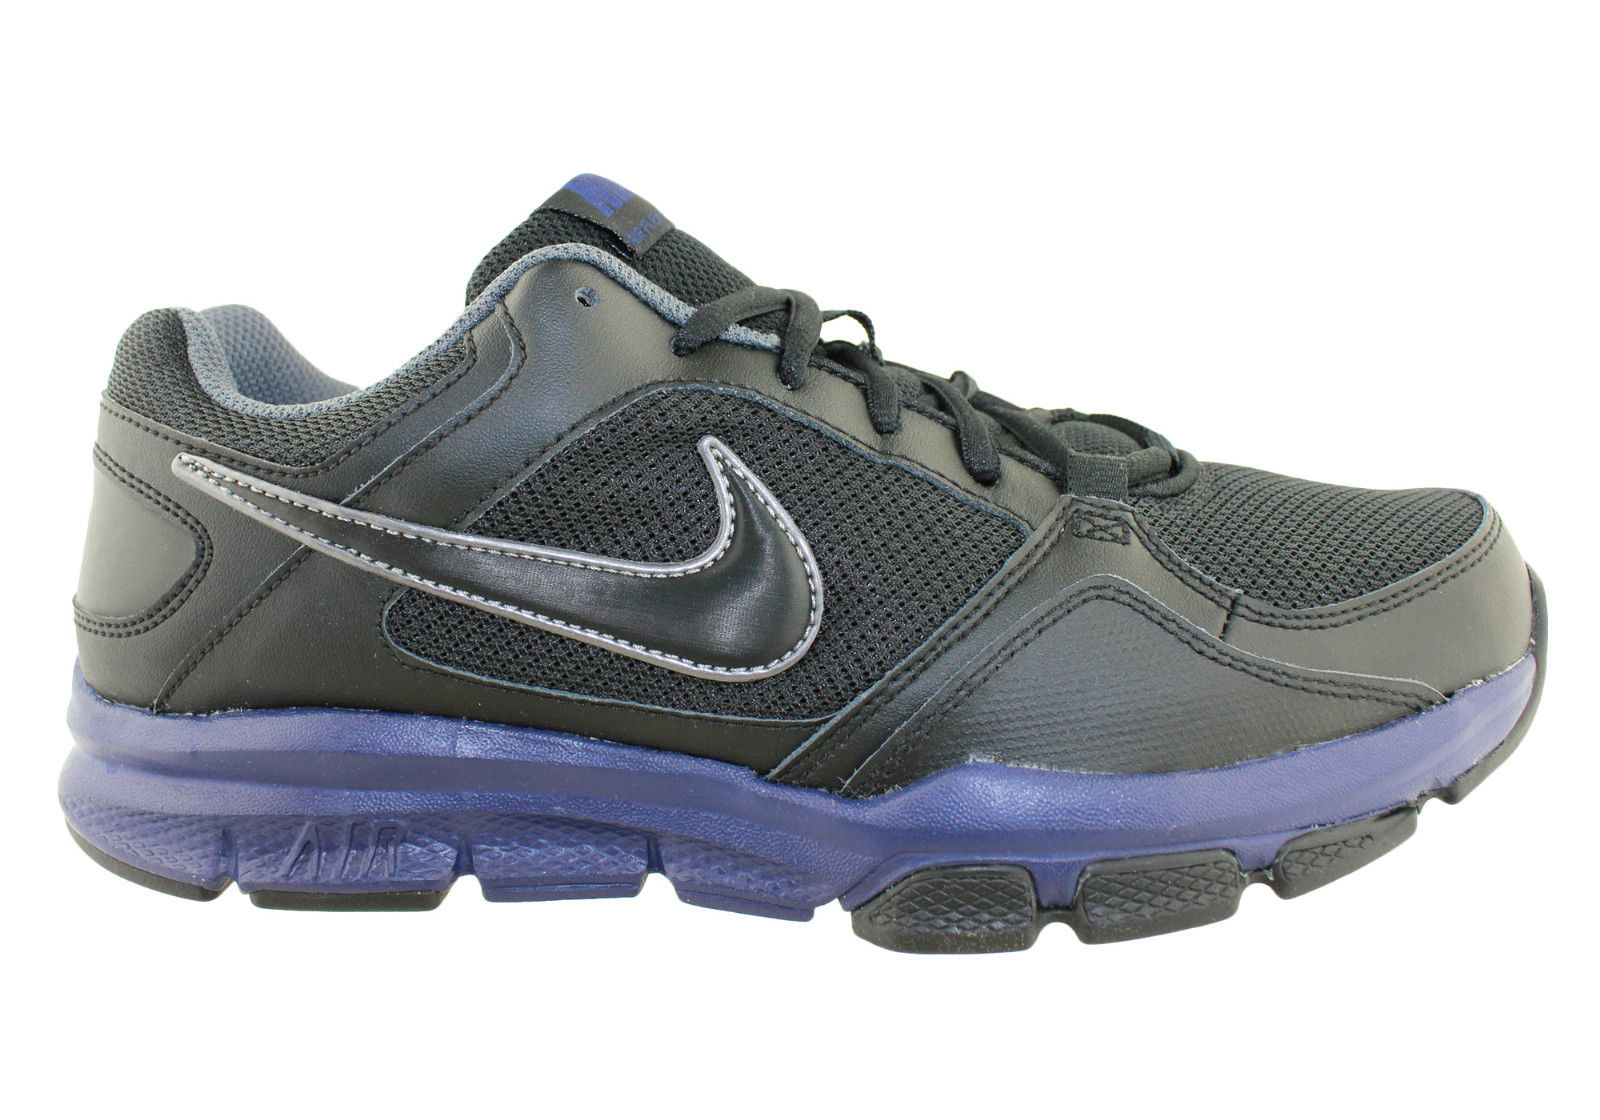 5e3a89ddb4bc Nike Air Flex Trainer II Mens Cross Training Sport Shoes